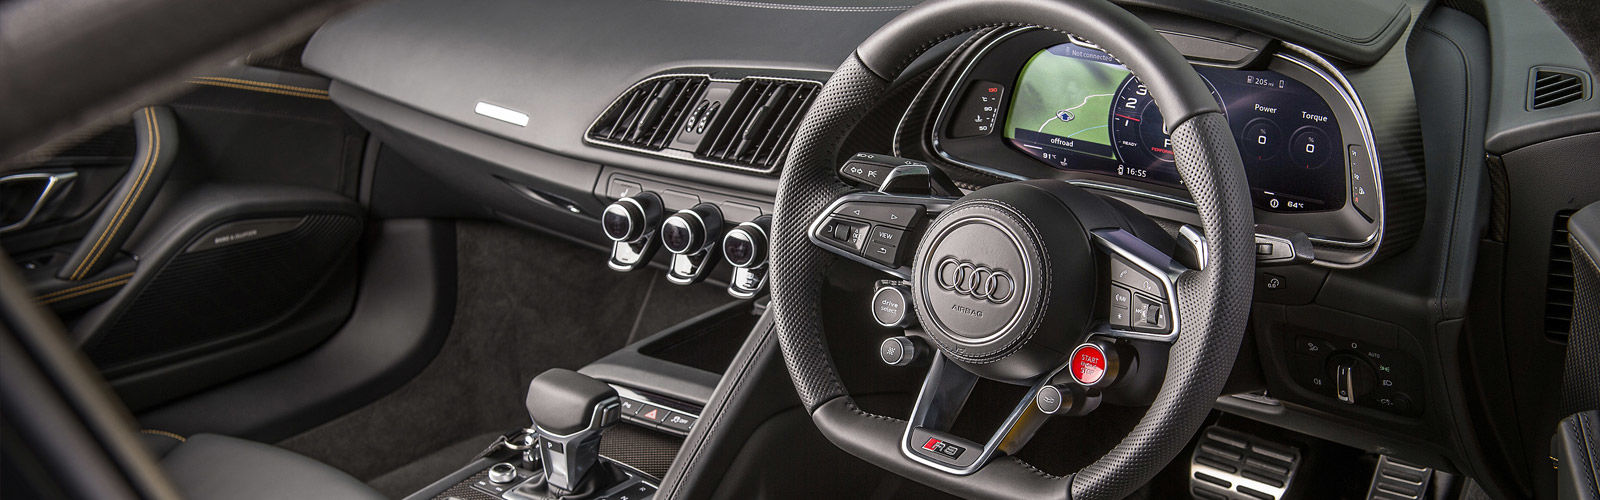 audi r8 interior. the interior layout will probably not change hugely from r8 v10 but materials and equipment levels may varyu2026 audi